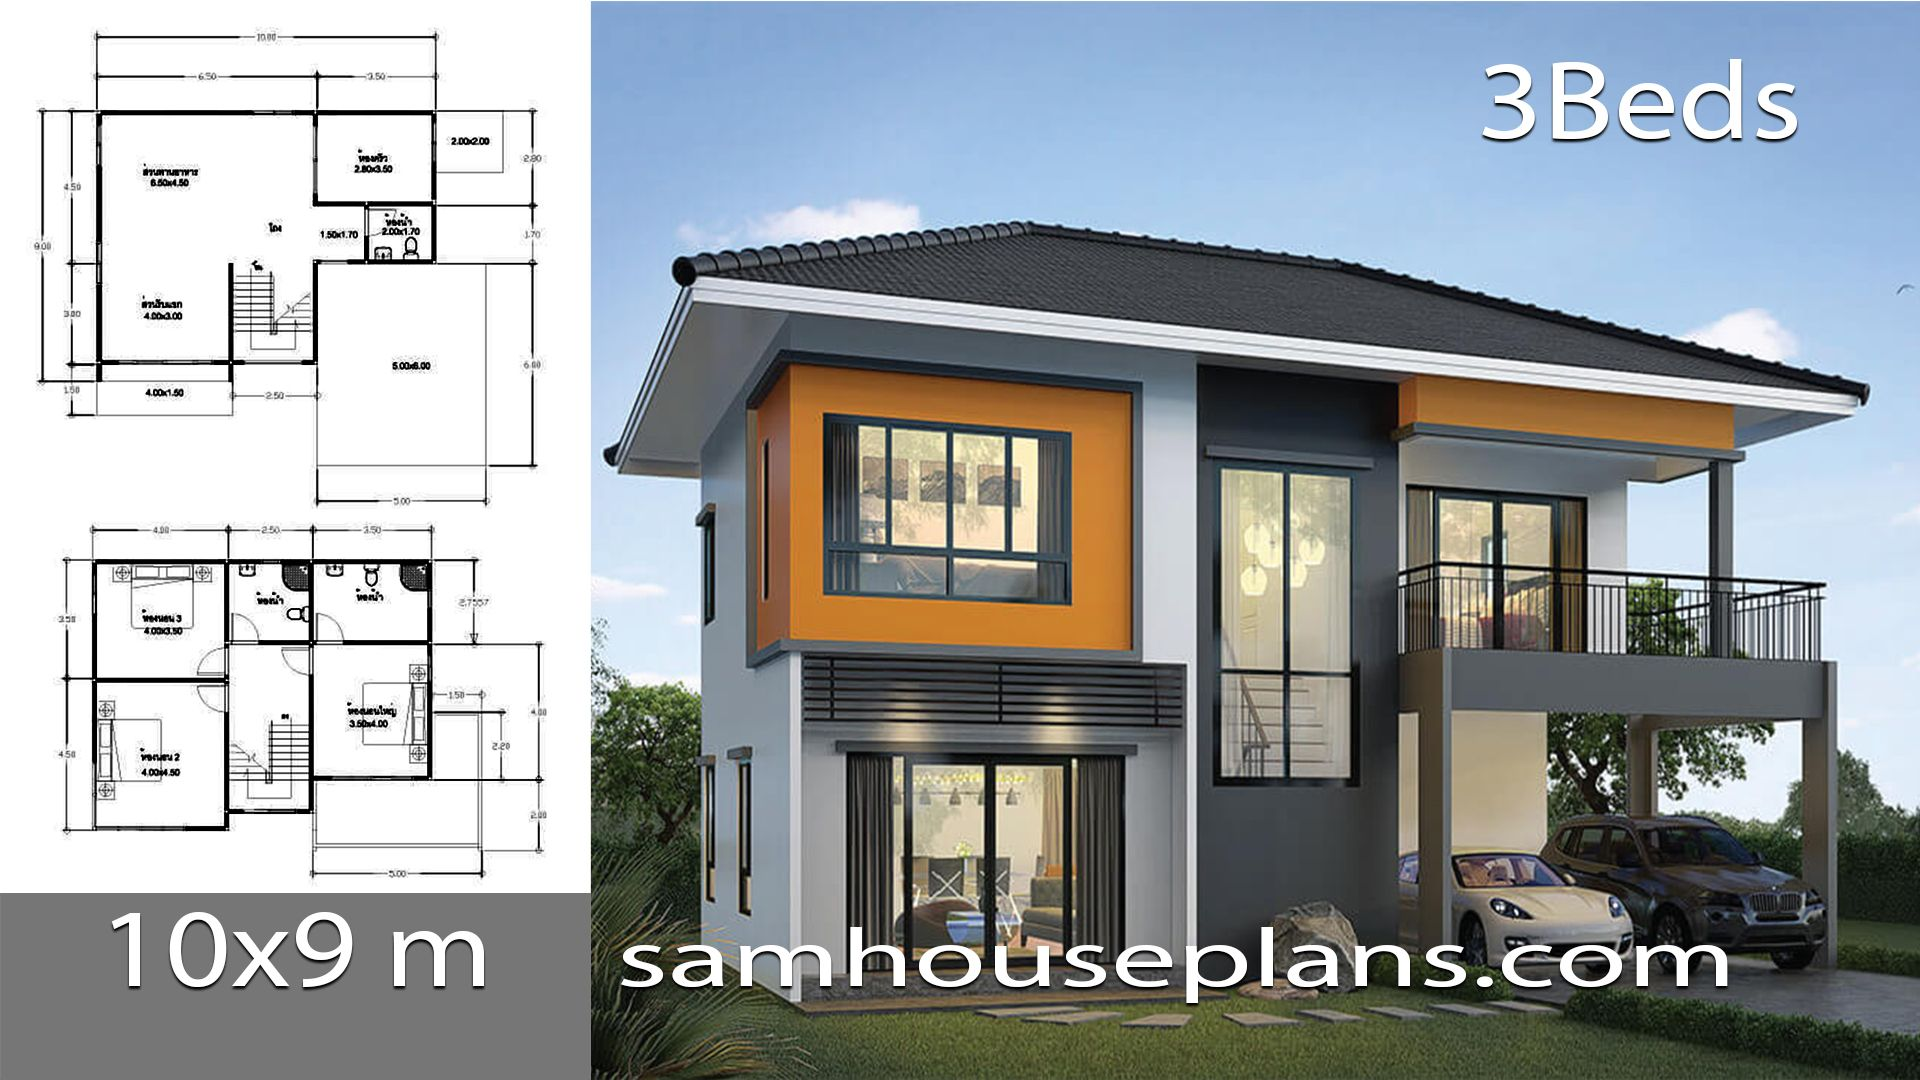 House Plans Idea 10x9m With 3 Bedrooms House Plans Free Downloads In 2020 House Plans House Modern Architecture House